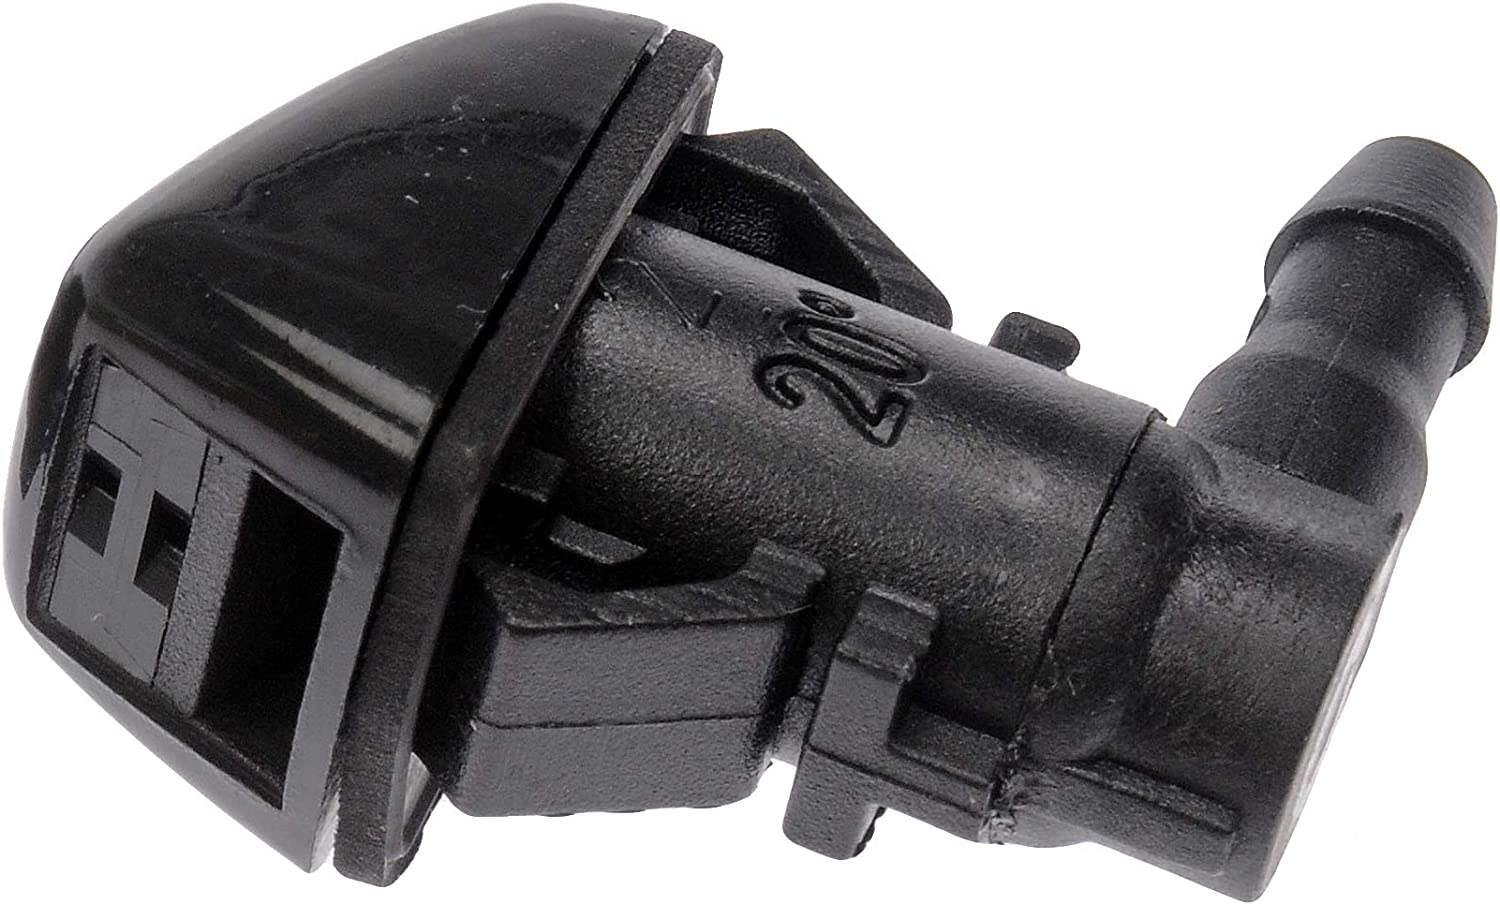 Dorman 58117 Windshield Washer Nozzle for Select Dodge/Jeep Models